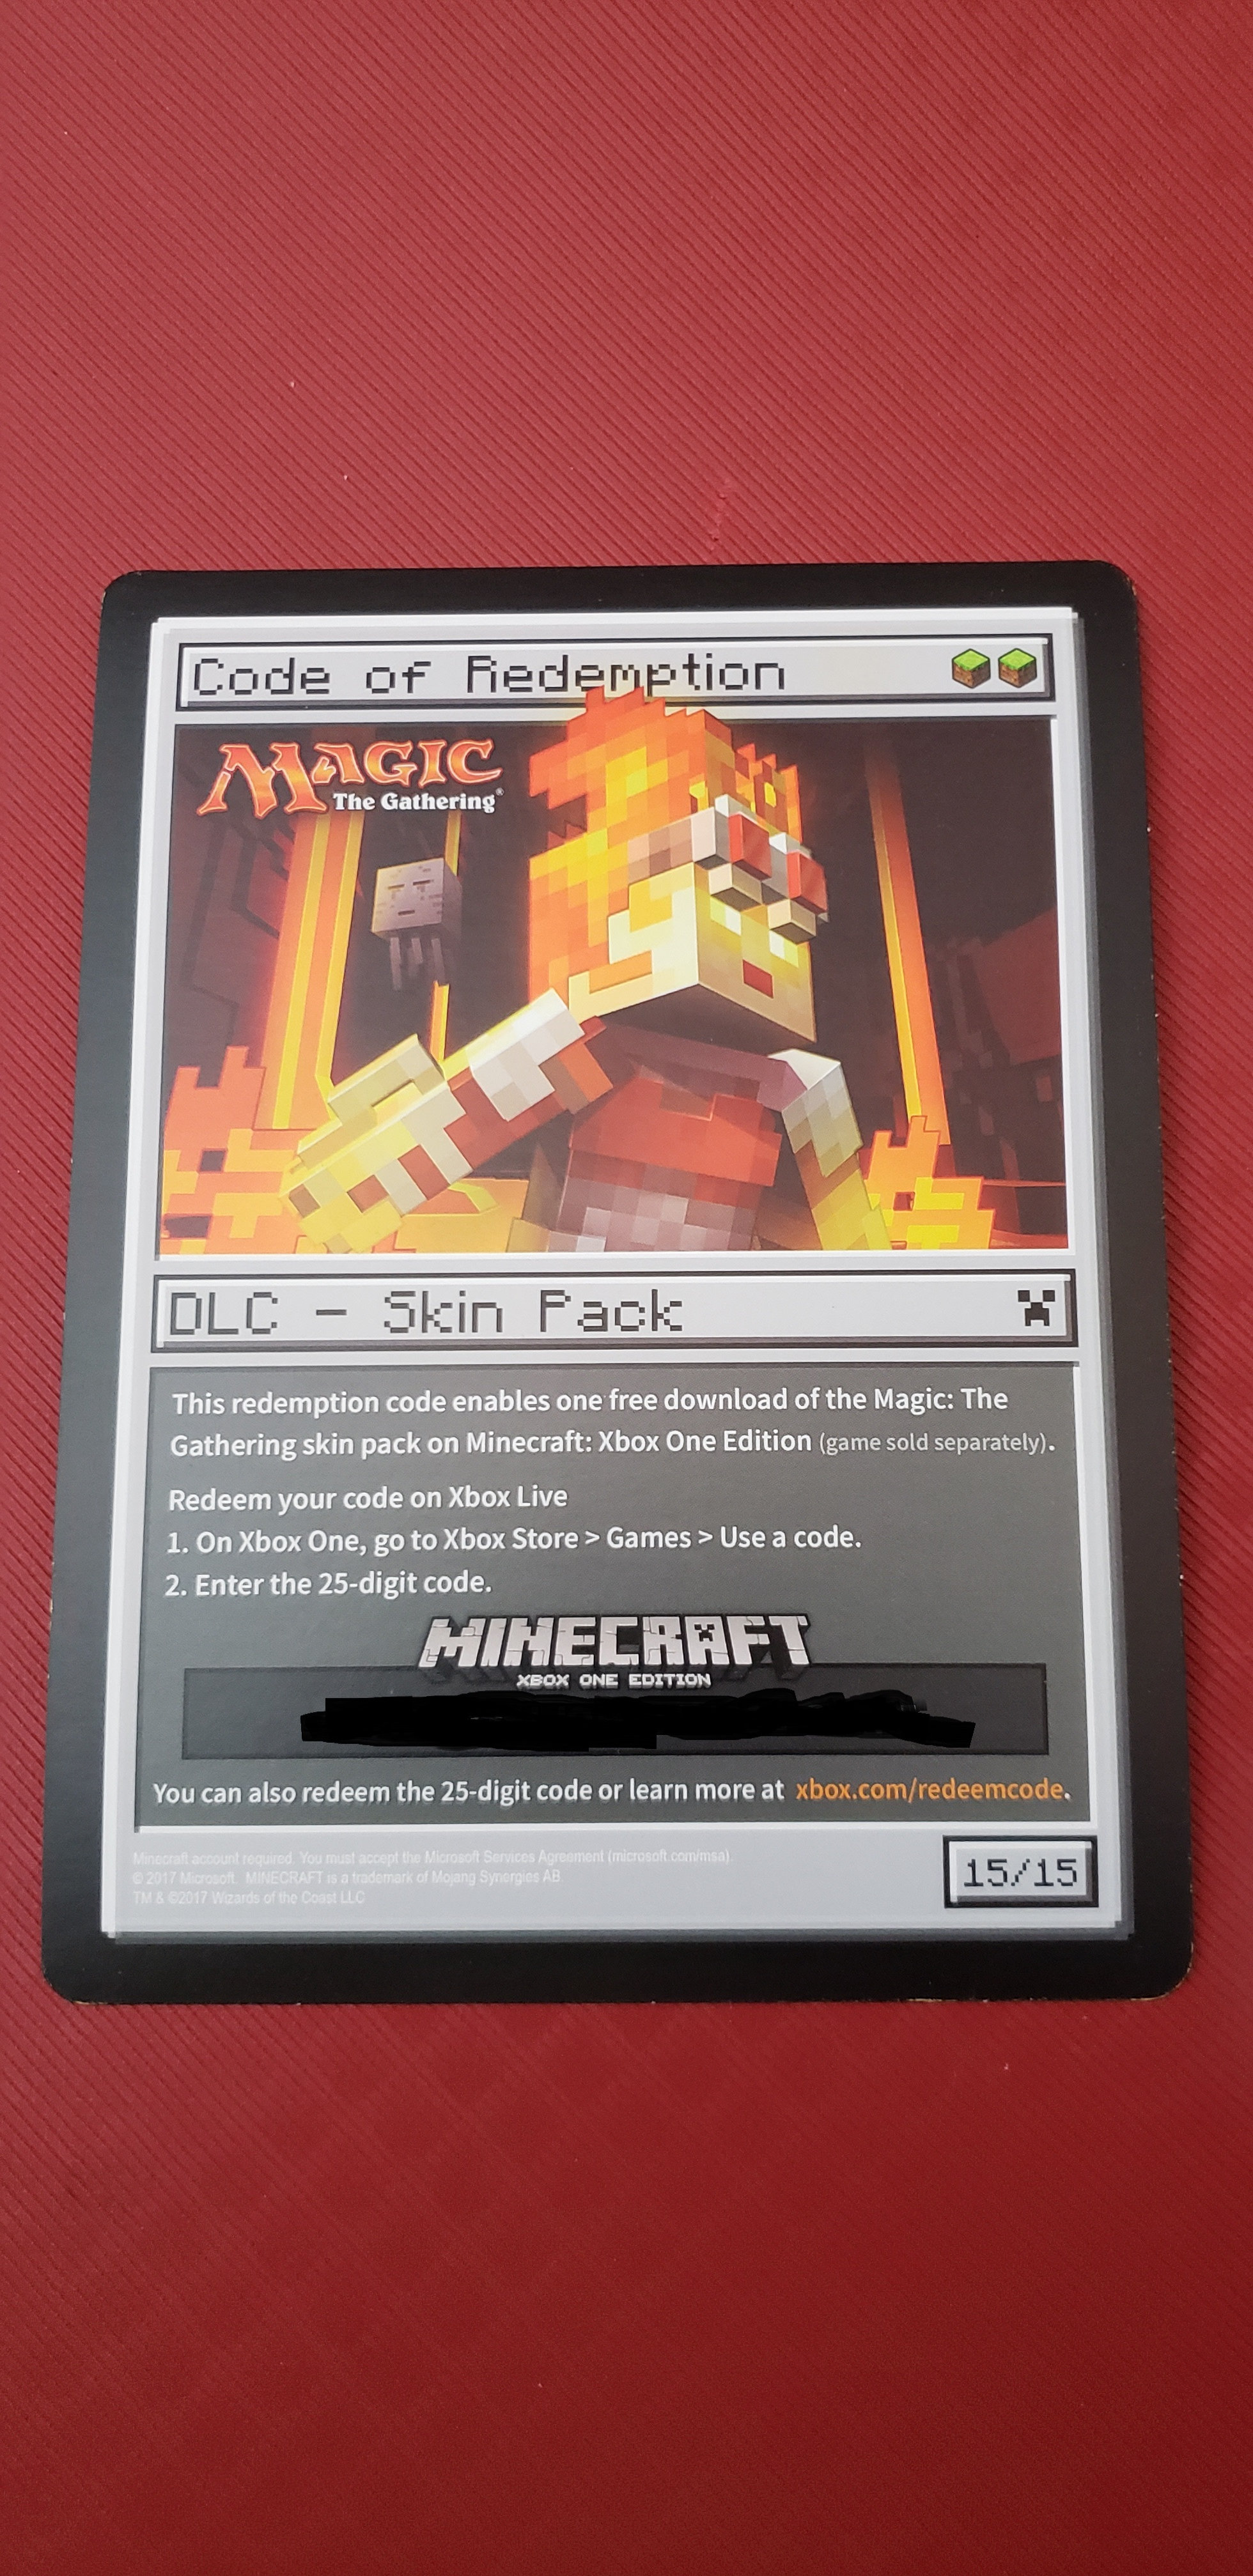 Magic: The Gathering Minecraft DLC Skin Pack Card (Xbox One)